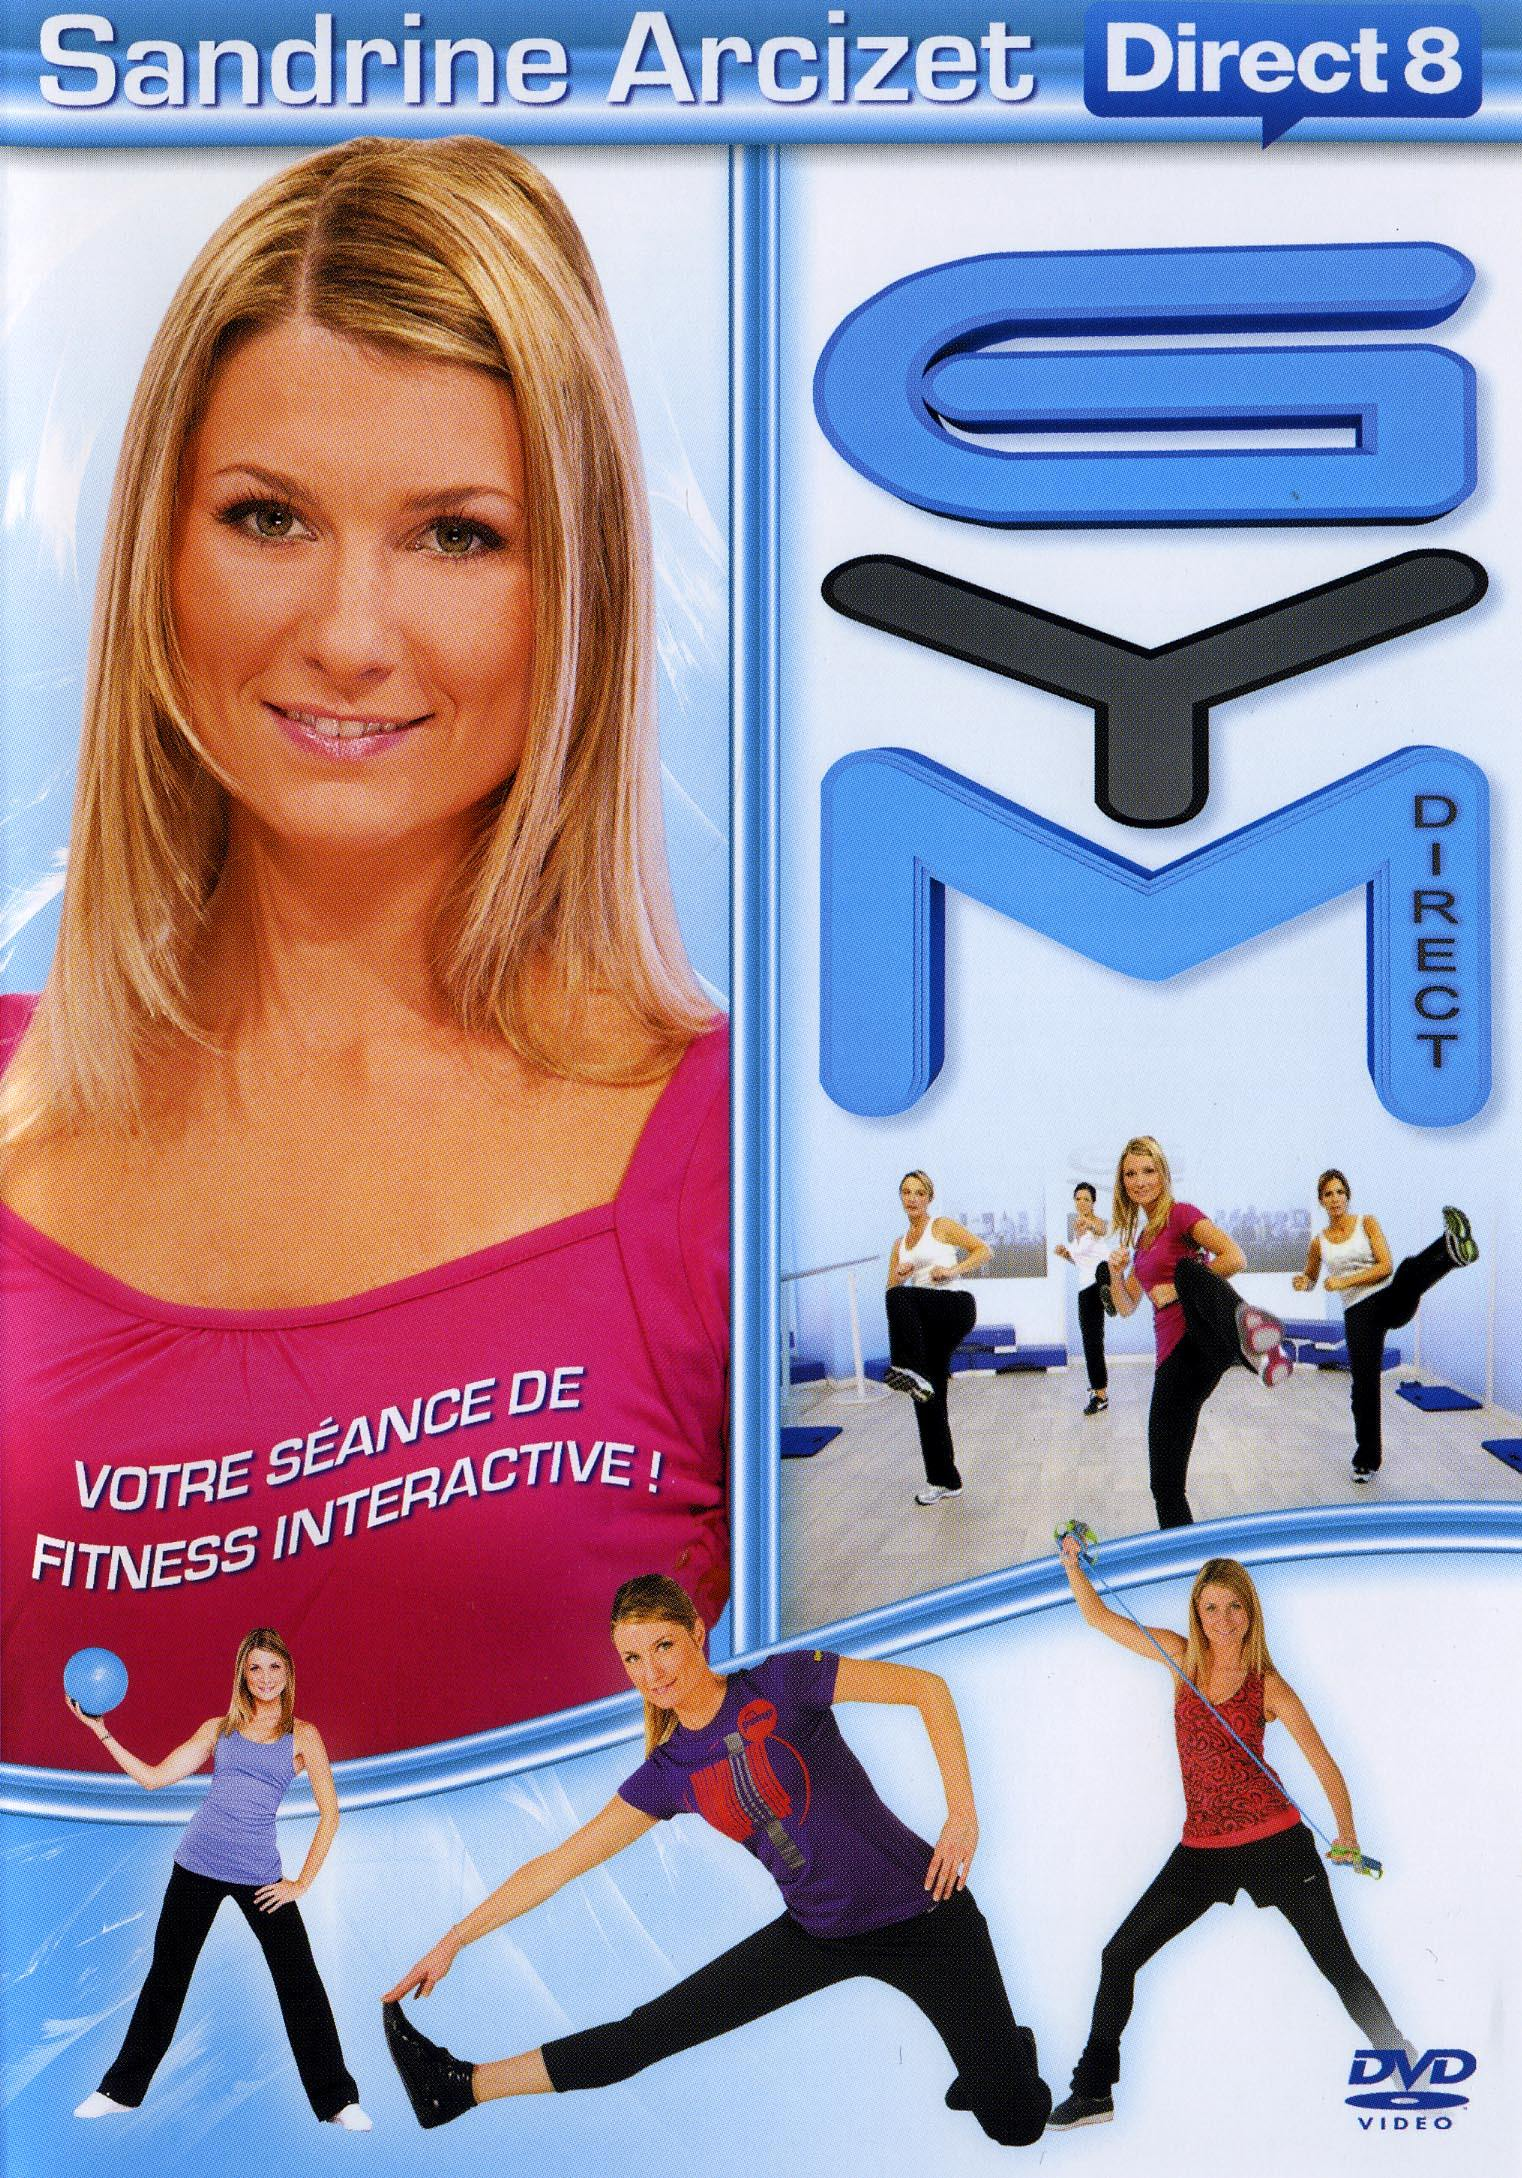 Gym direct - dvd